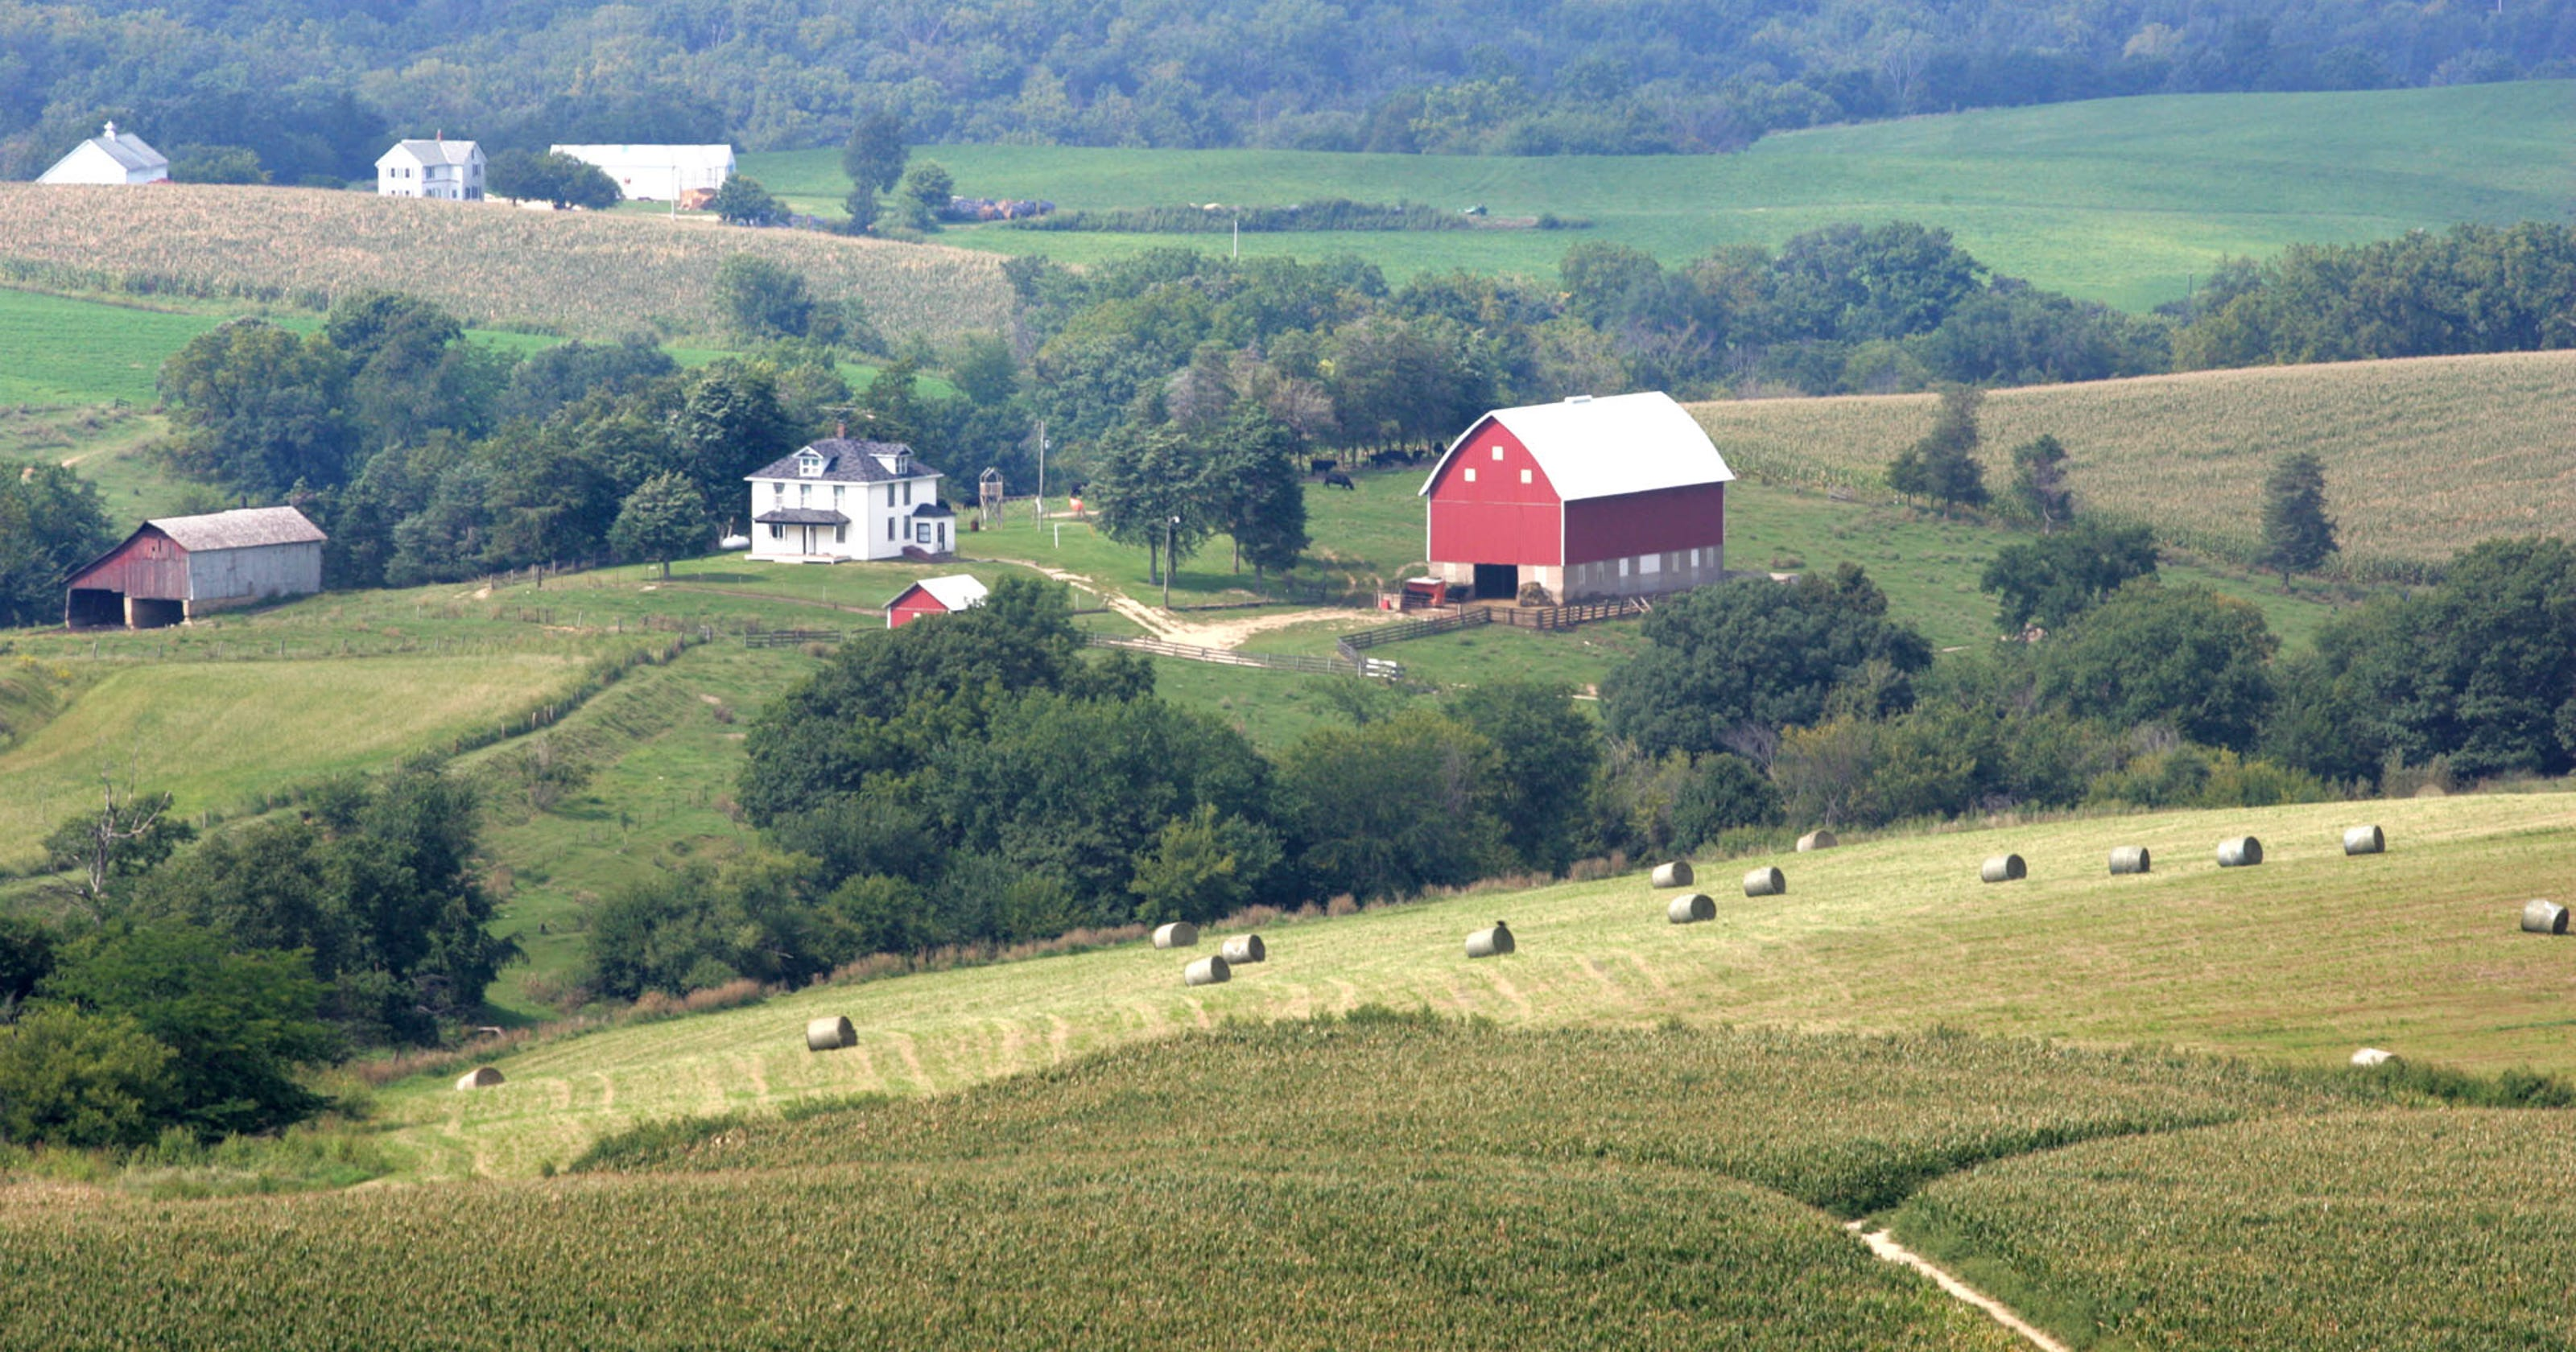 Zillow for farmers? New websites size up Iowa farmland values